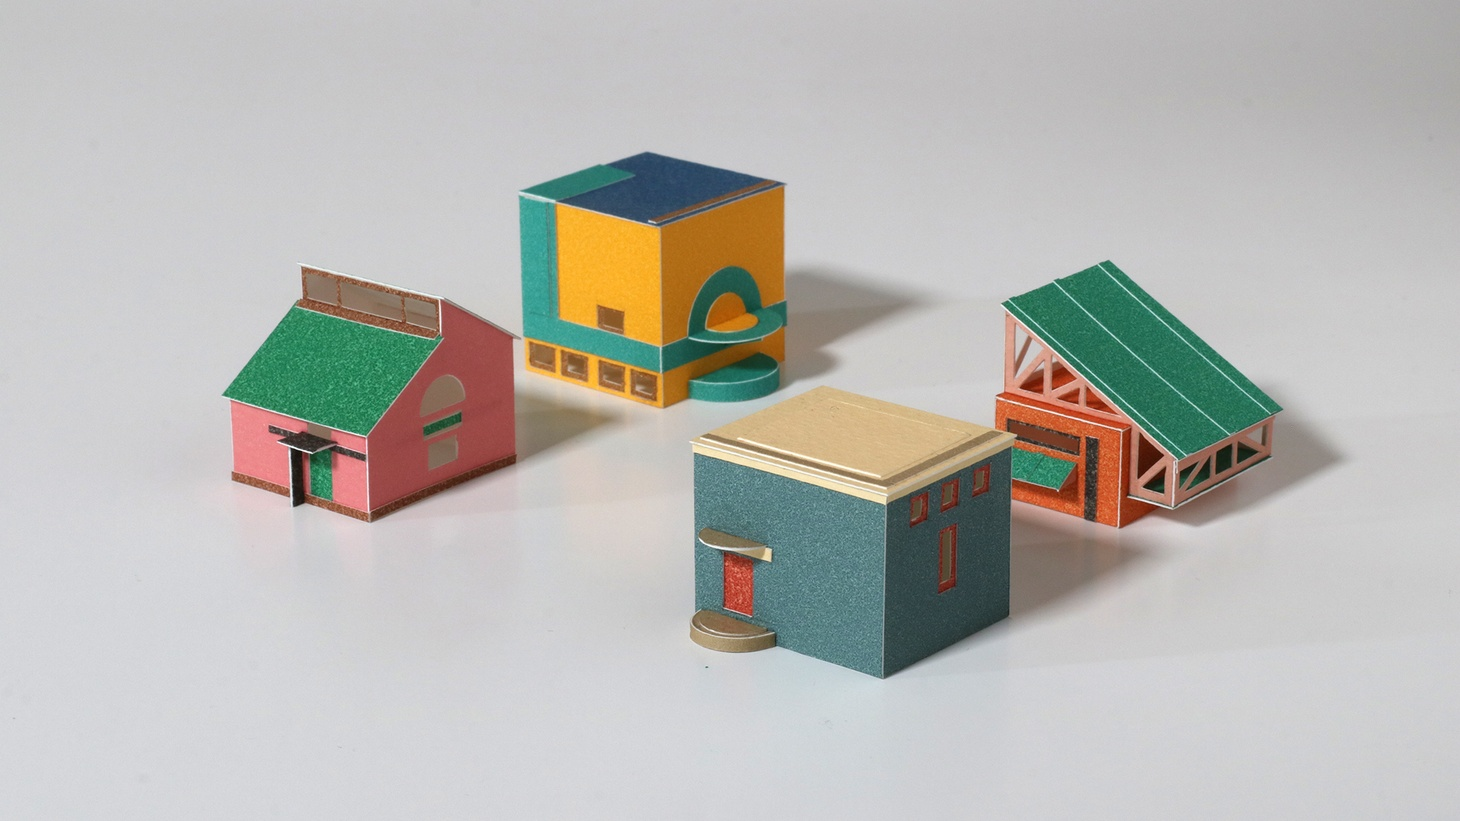 Artist Charles Young created paper model renderings for the Low-rise housing challenge.